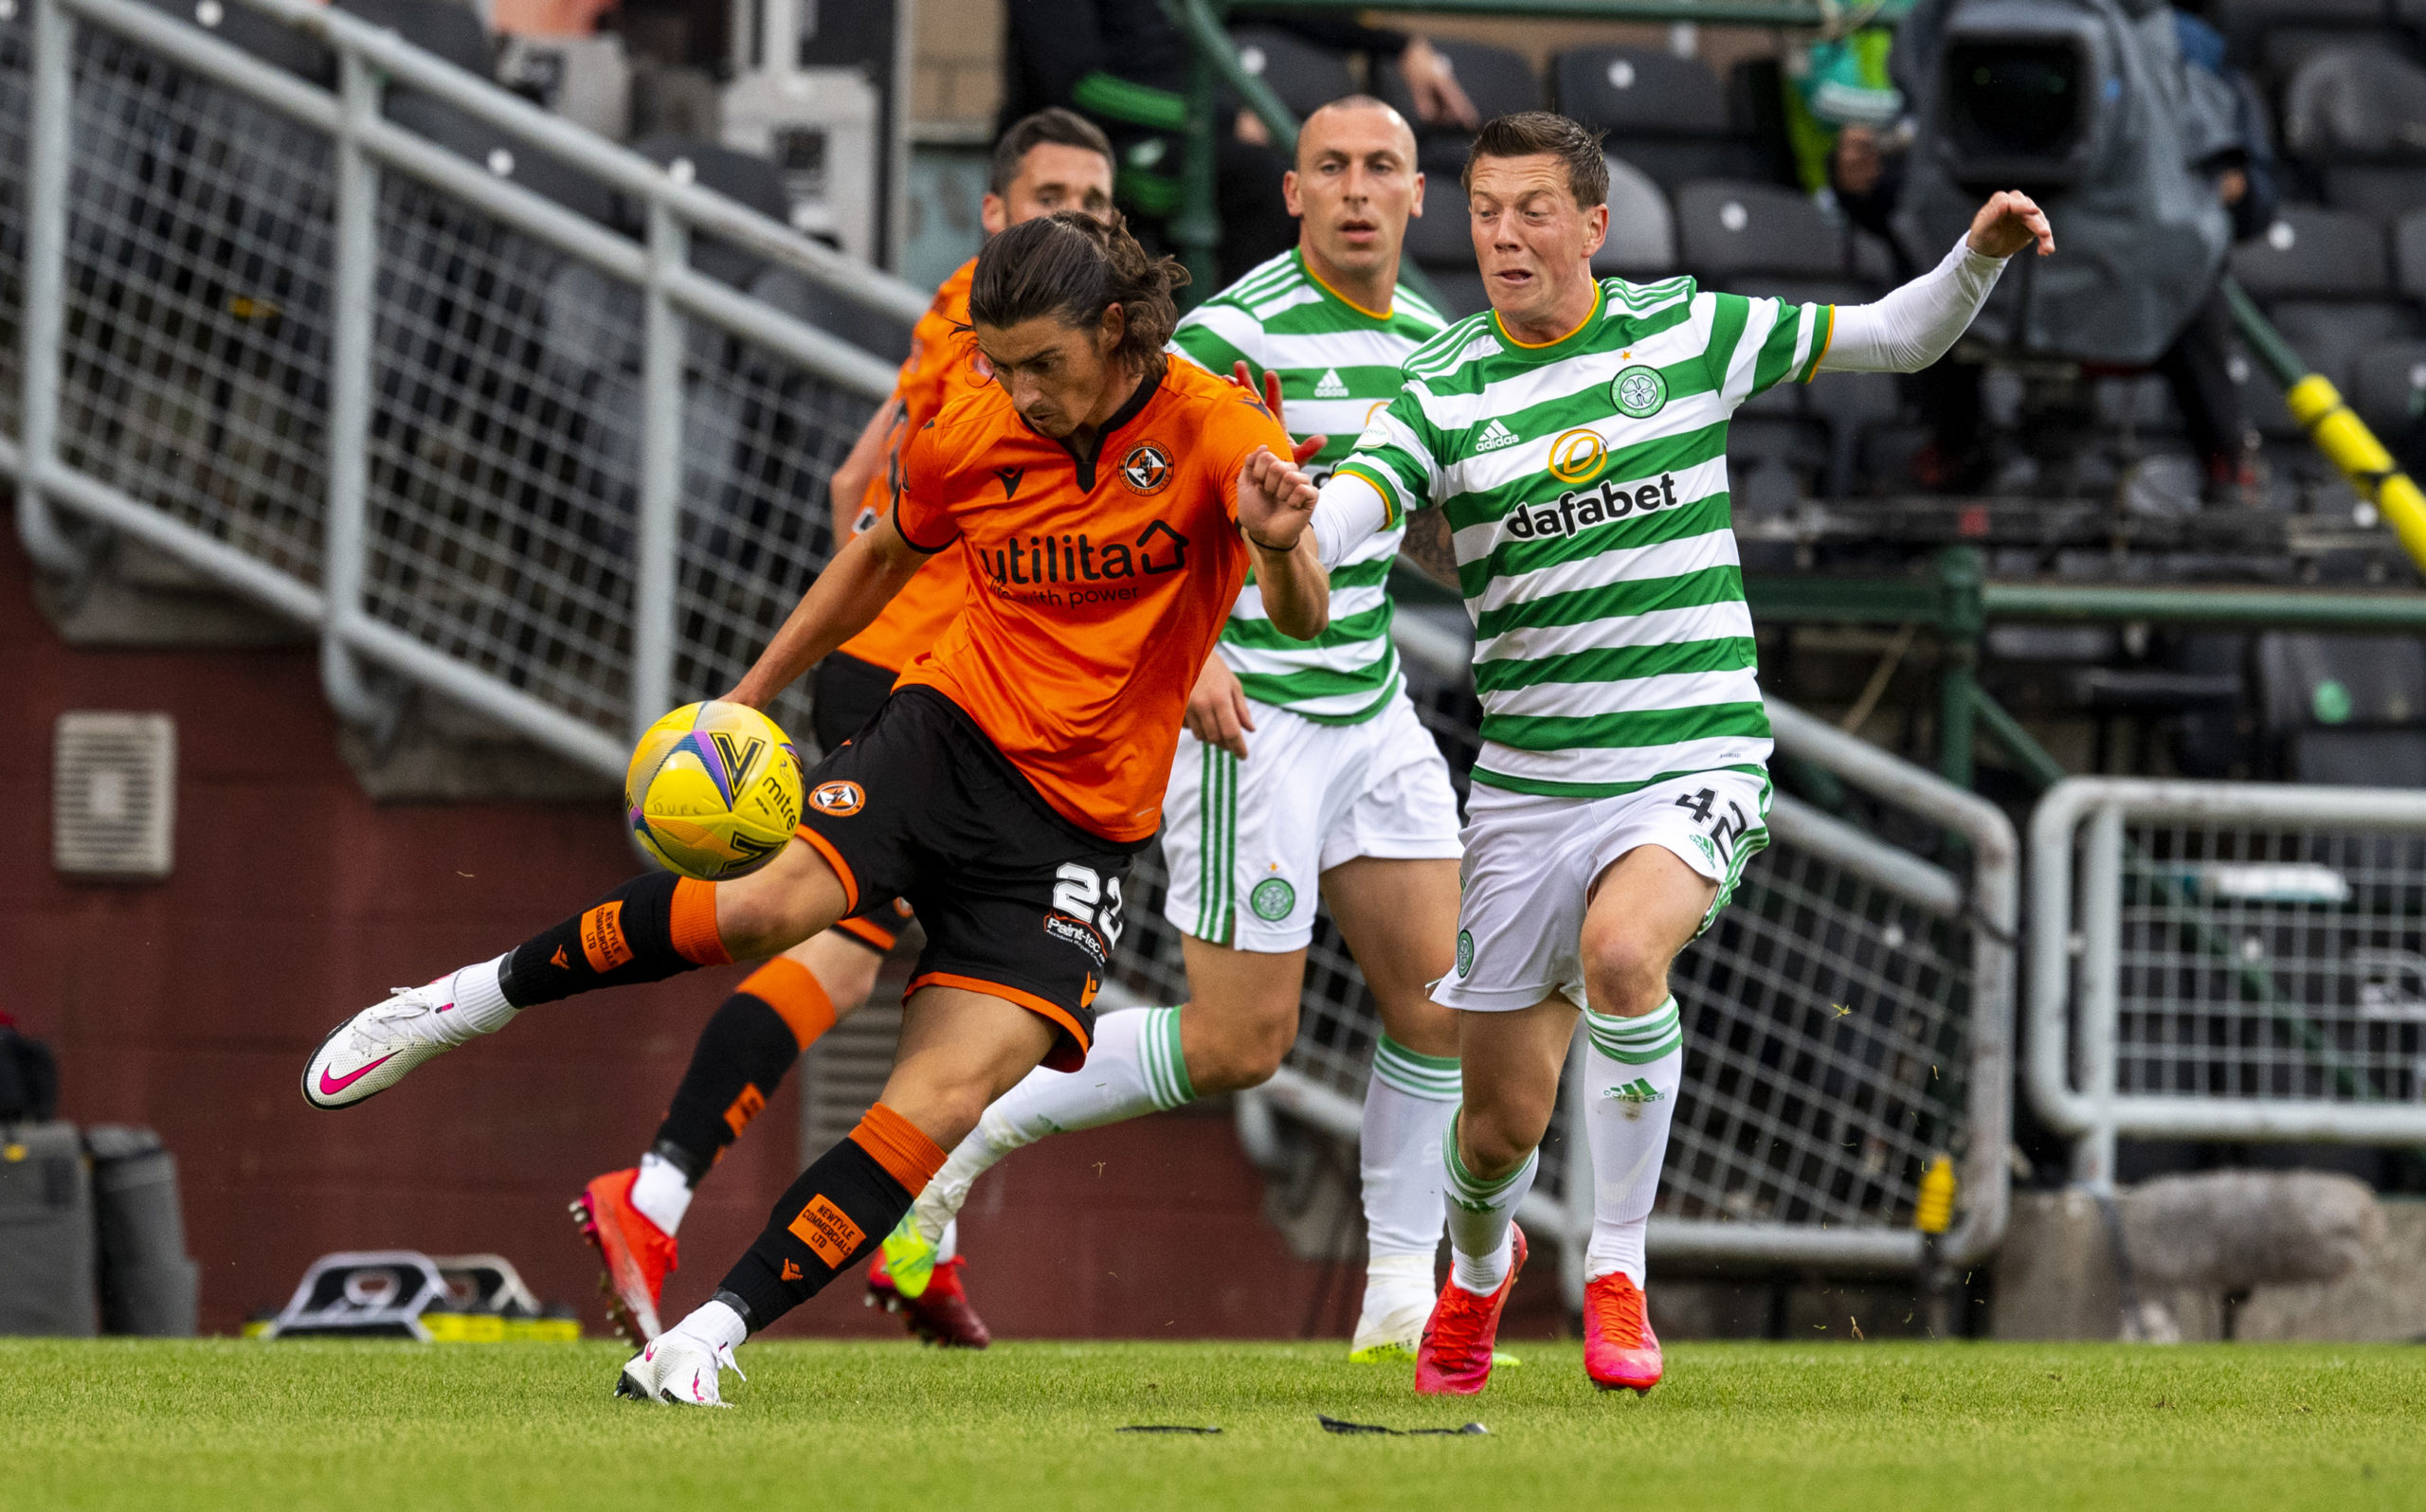 Dundee United's Ian Harkes in action against Celtic.